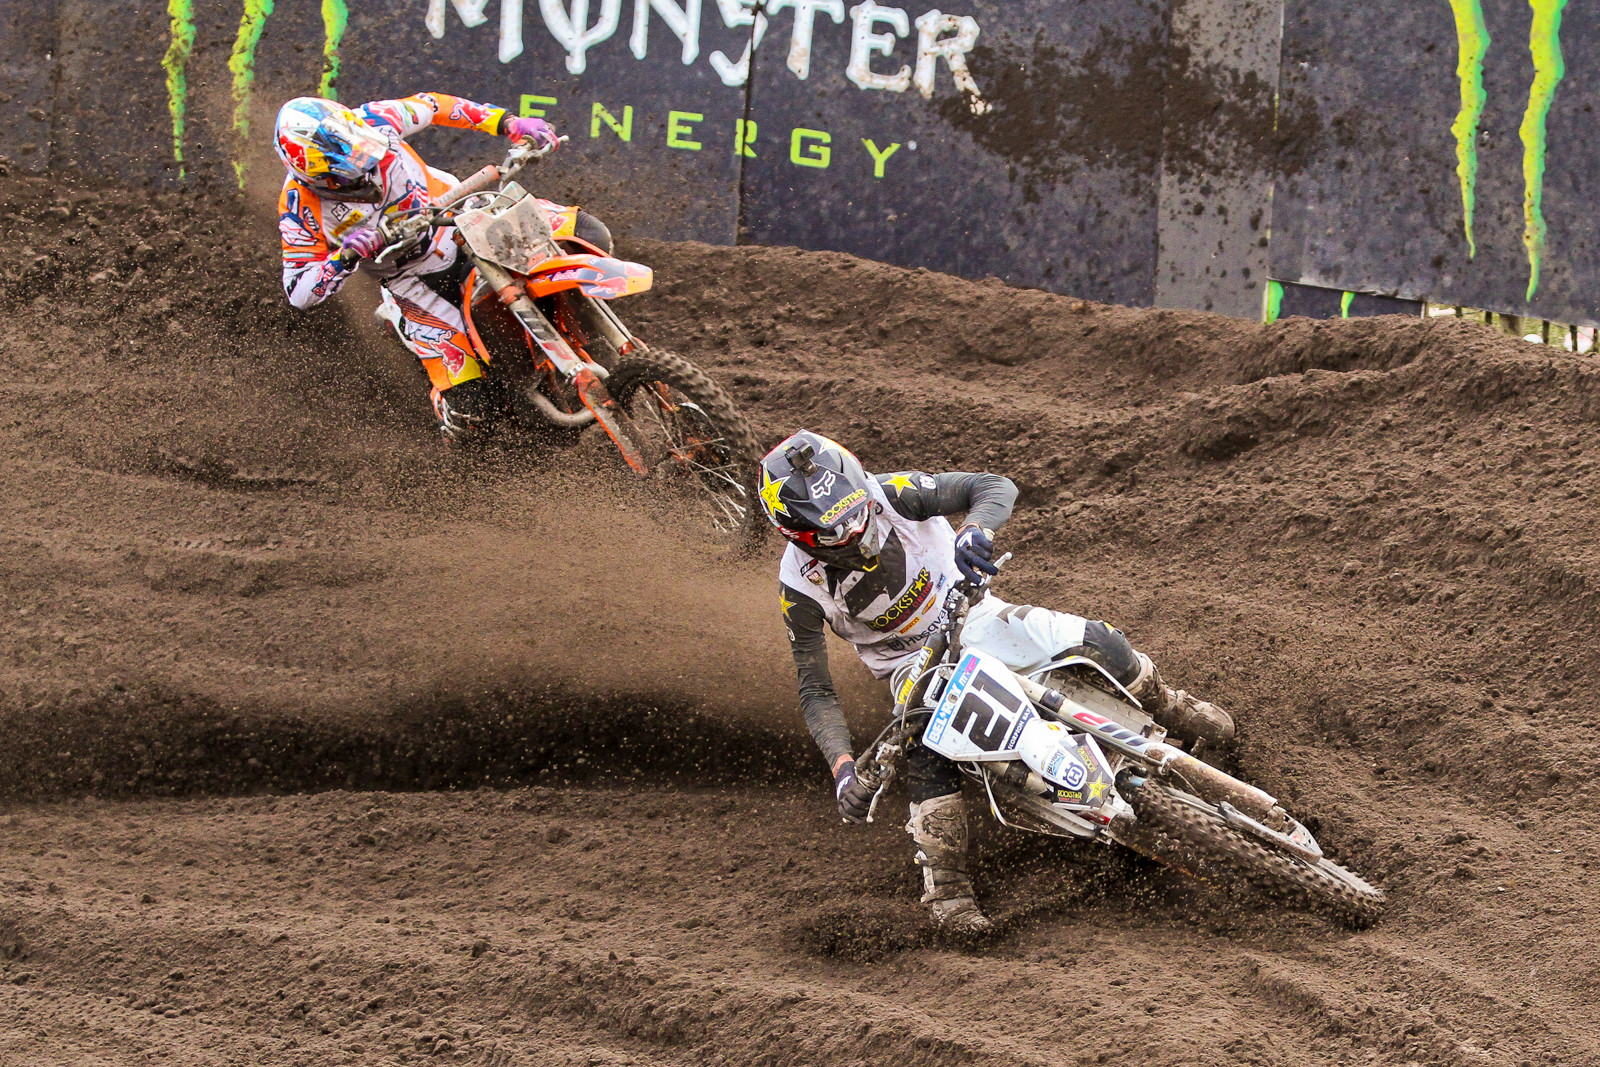 Gautier Paulin / Jeffrey Herlings - Photo Blast: 2017 MXGP of Valkenswaard - Motocross Pictures - Vital MX